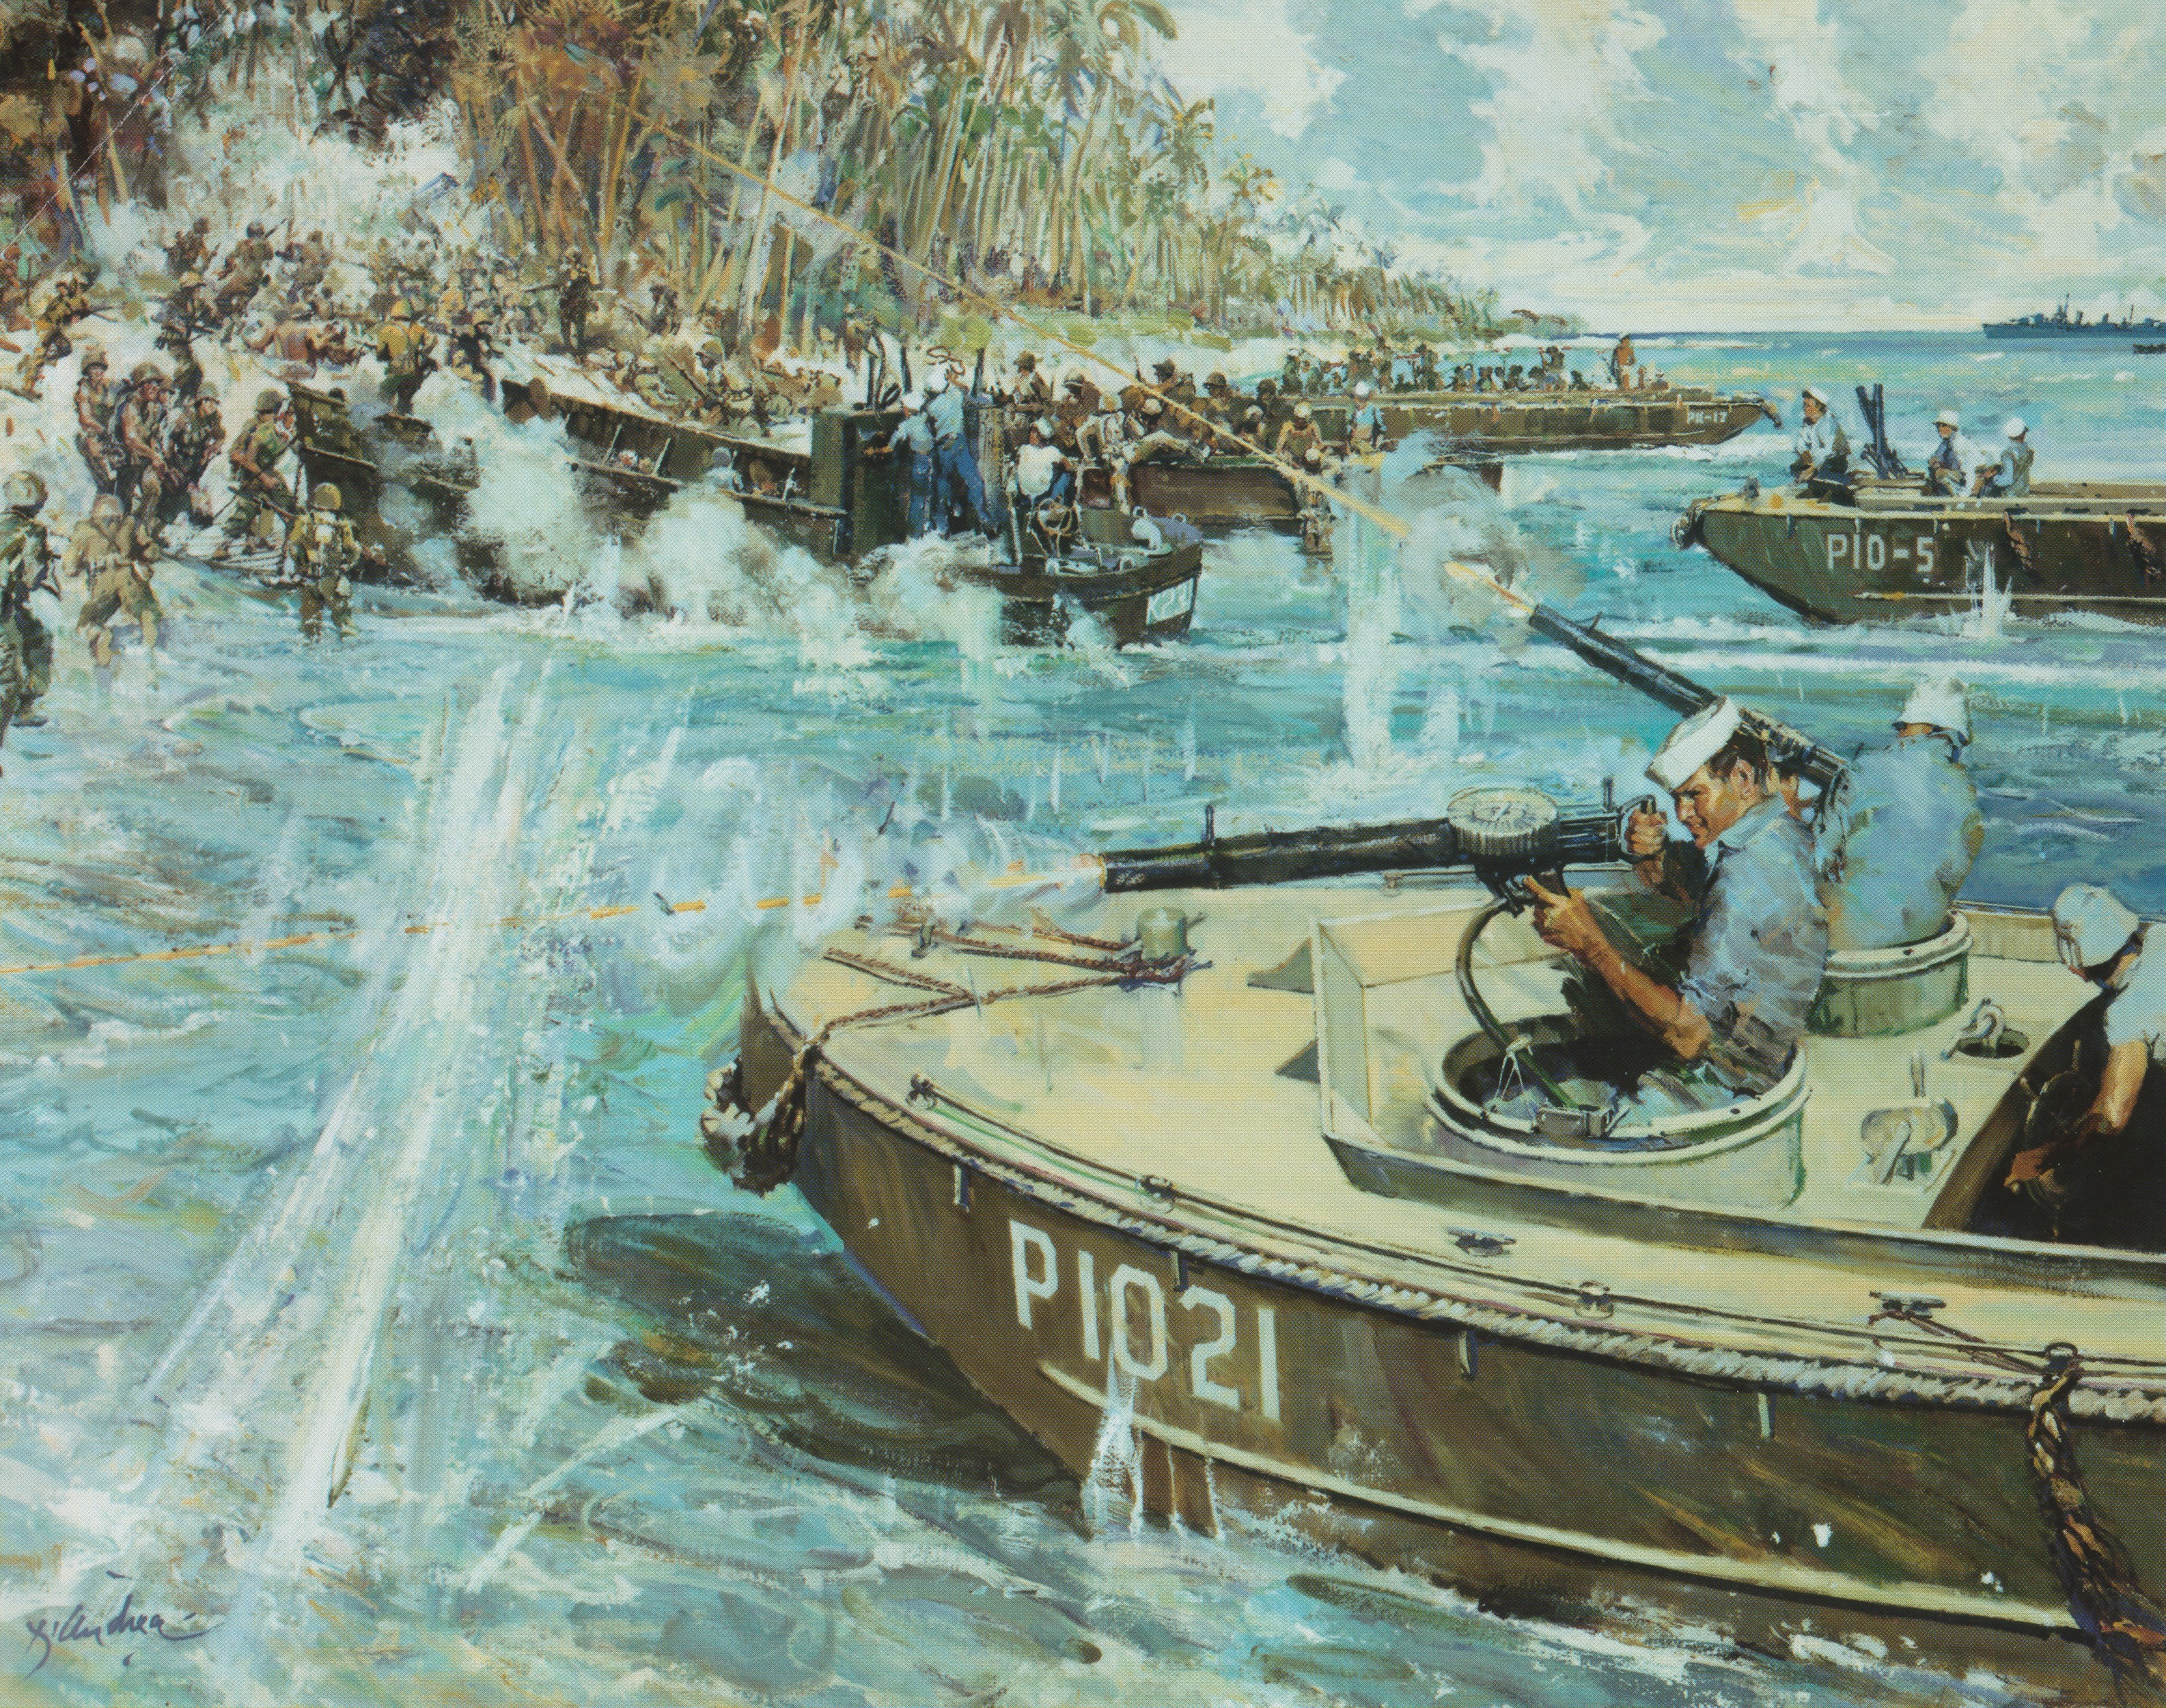 Artwork depicting Munro during the engagement at Guadalcanal. This image was found at-